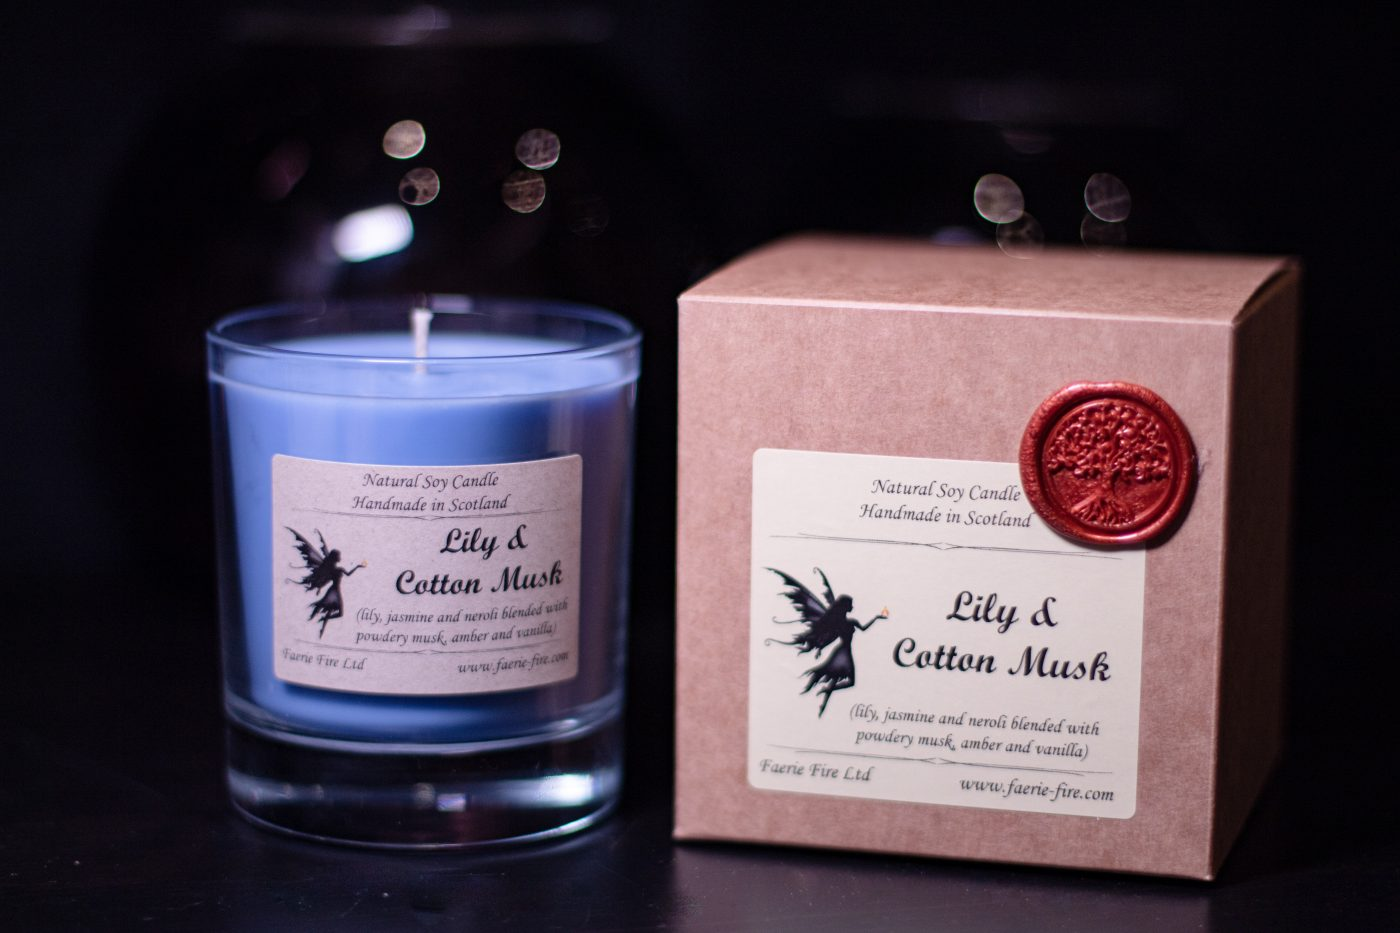 Blue soy wax candle in a clear glass jar, sitting next to a presentation box smelling like lily and cotton musk, against a dark background